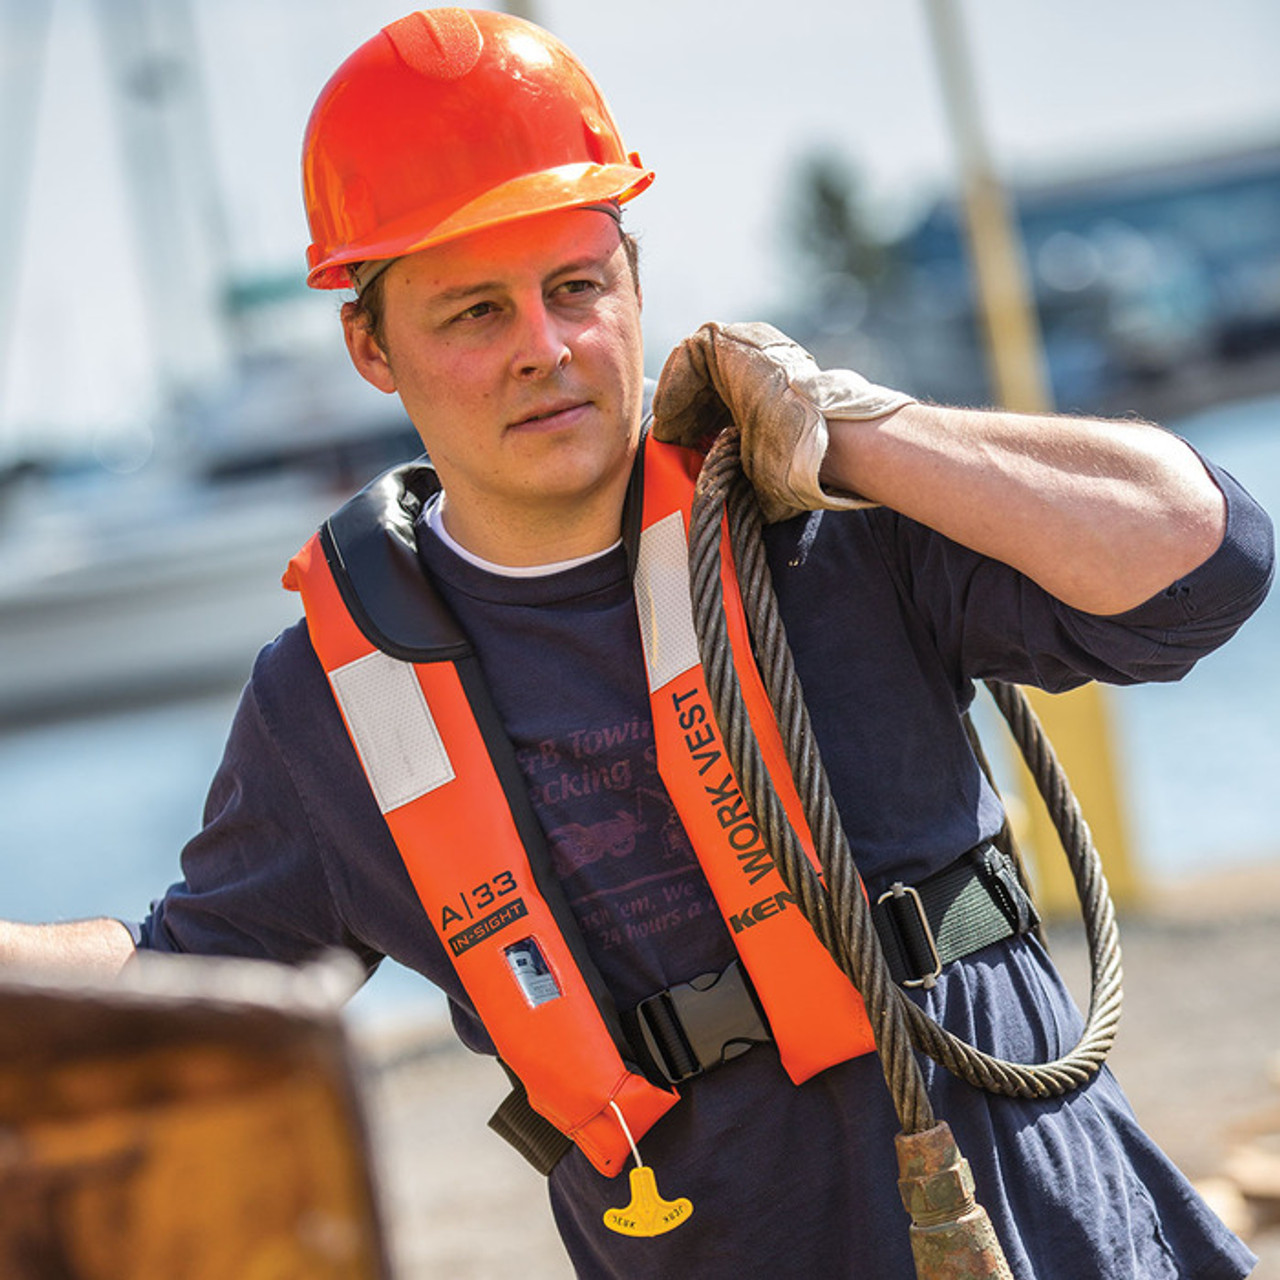 56176 KENT A-33 in-Sight Automatic Inflatable Work Vest